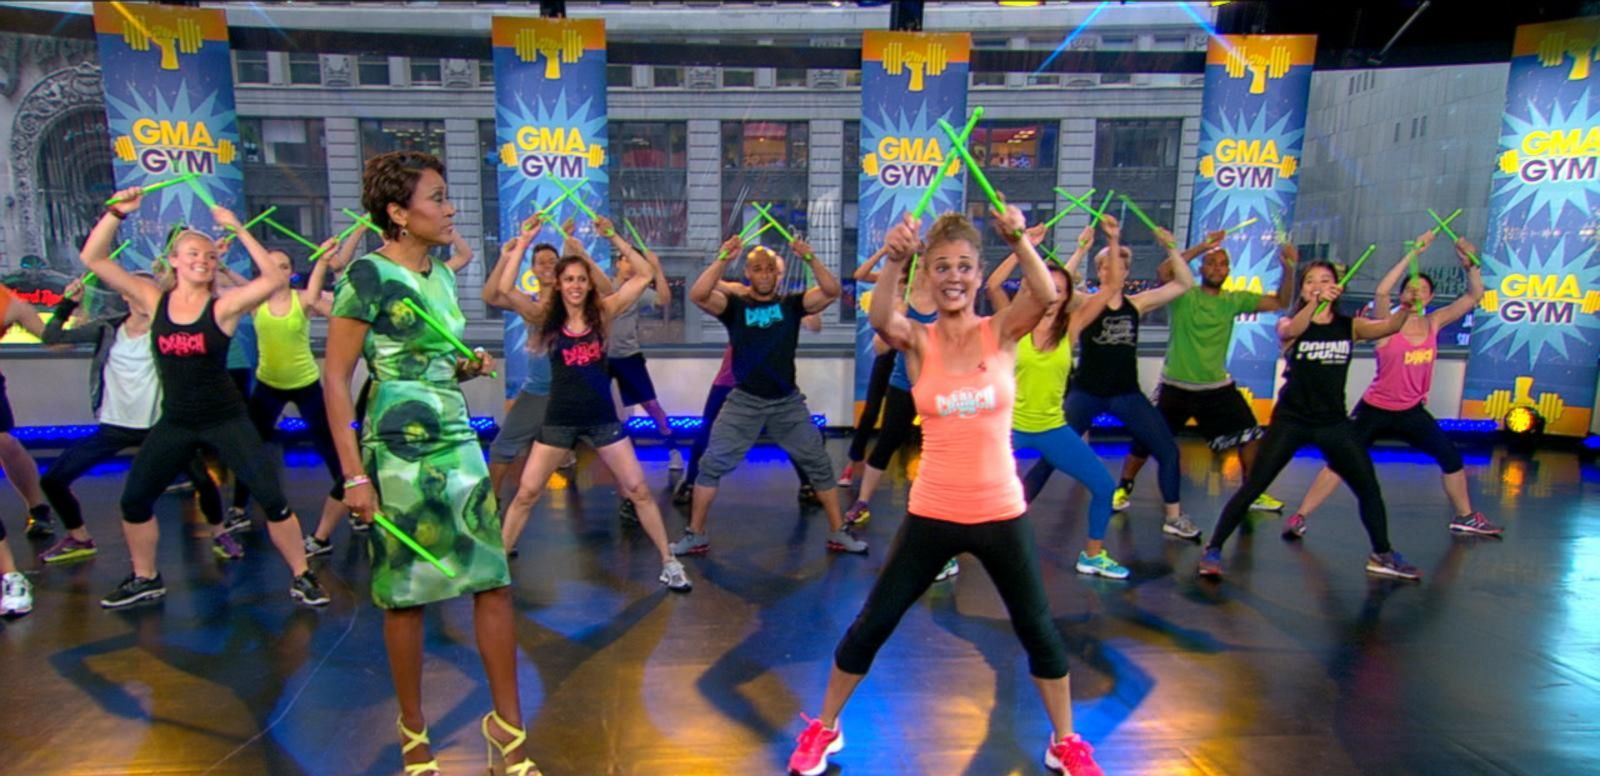 VIDEO: Pound Your Way to Fitness in Drum-Based Workout Class